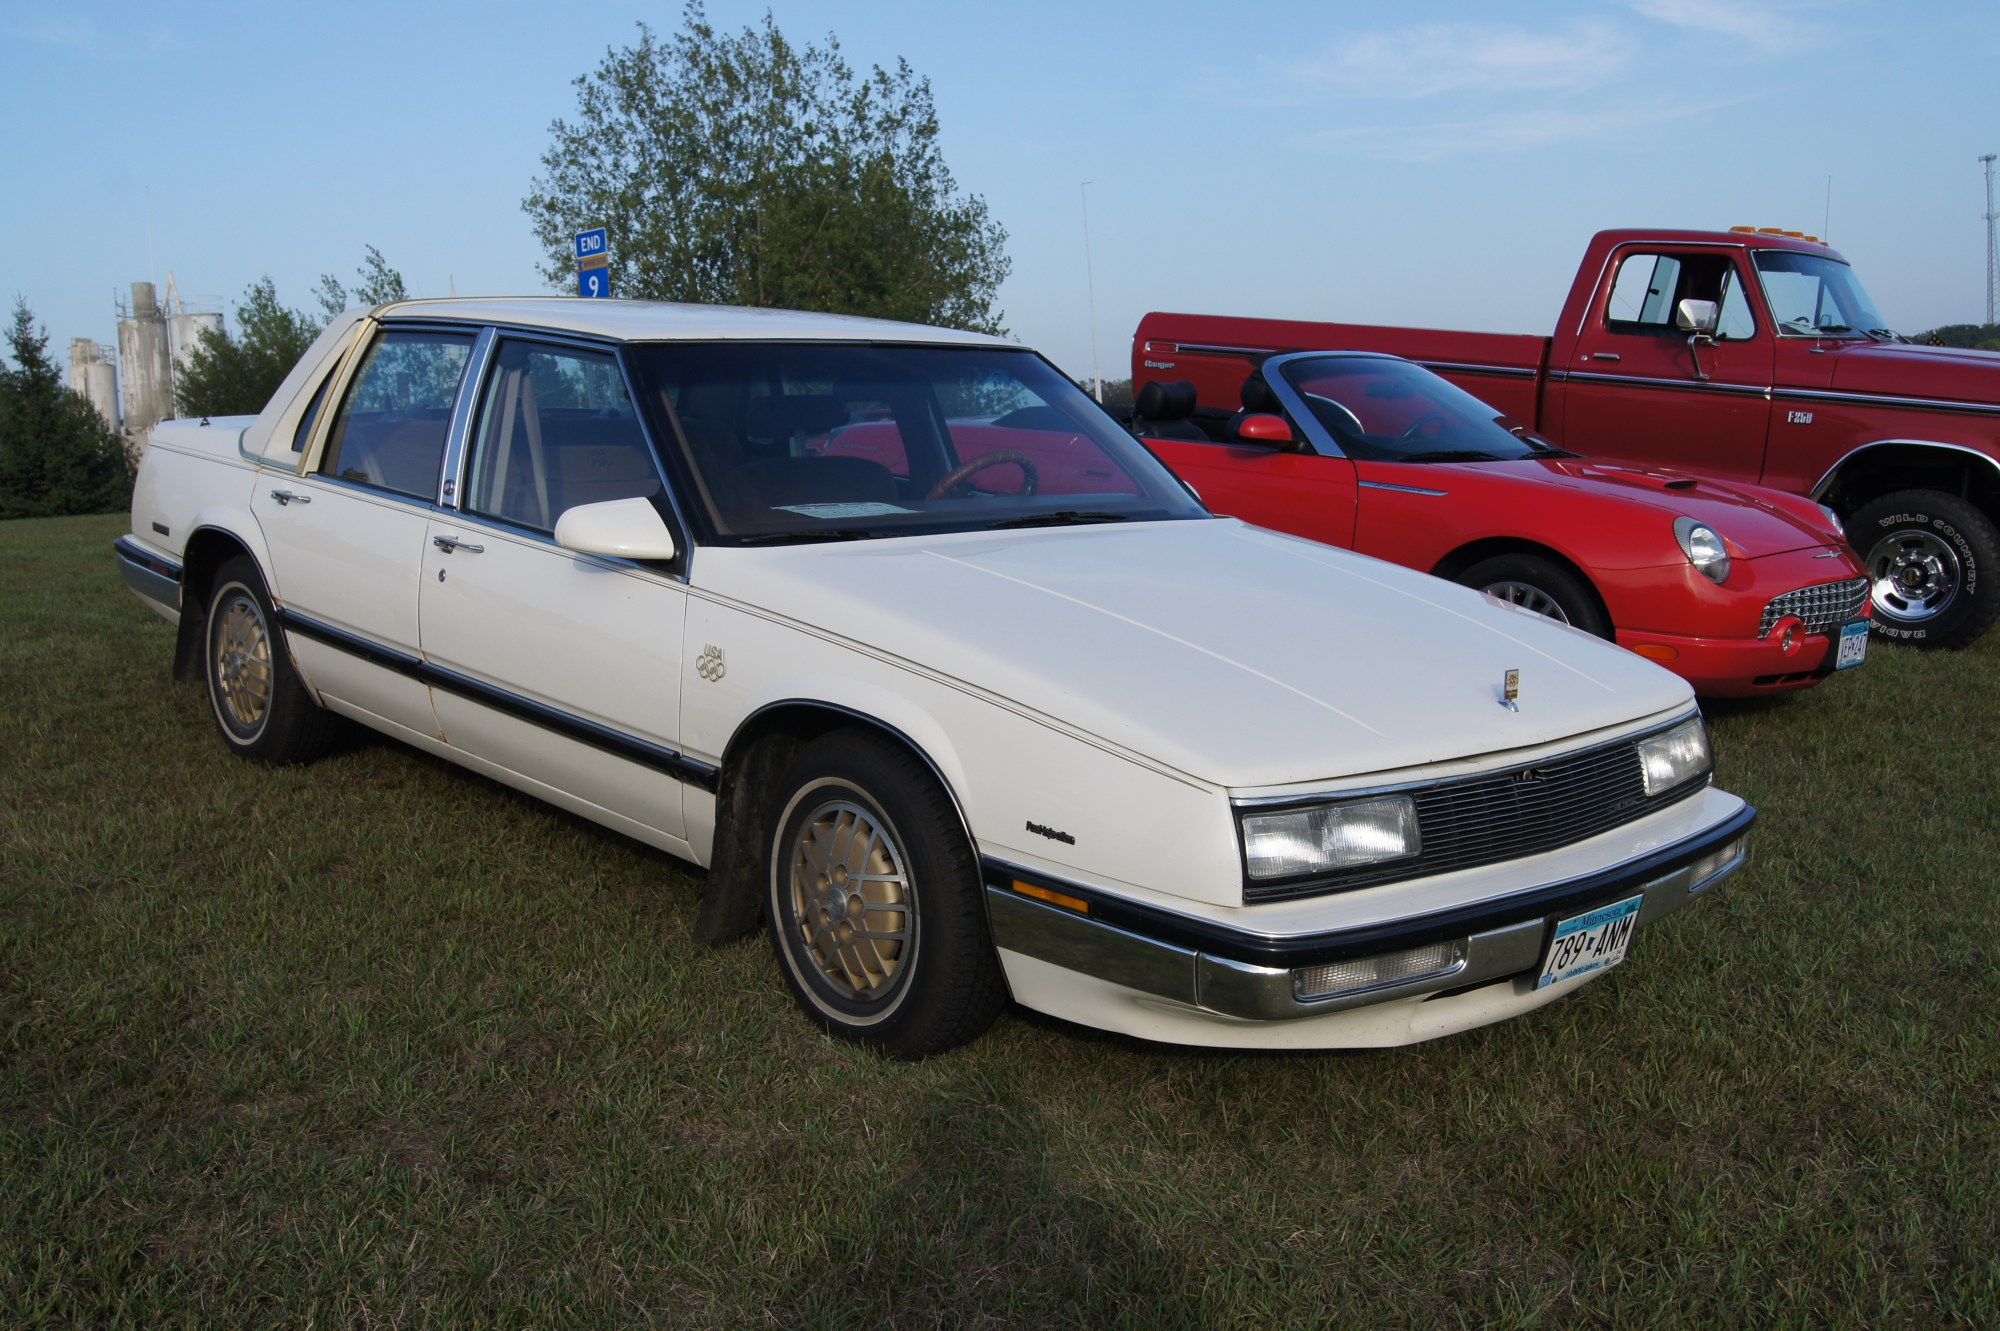 hight resolution of file 1988 buick lesabre olympic edition 9844803504 jpg